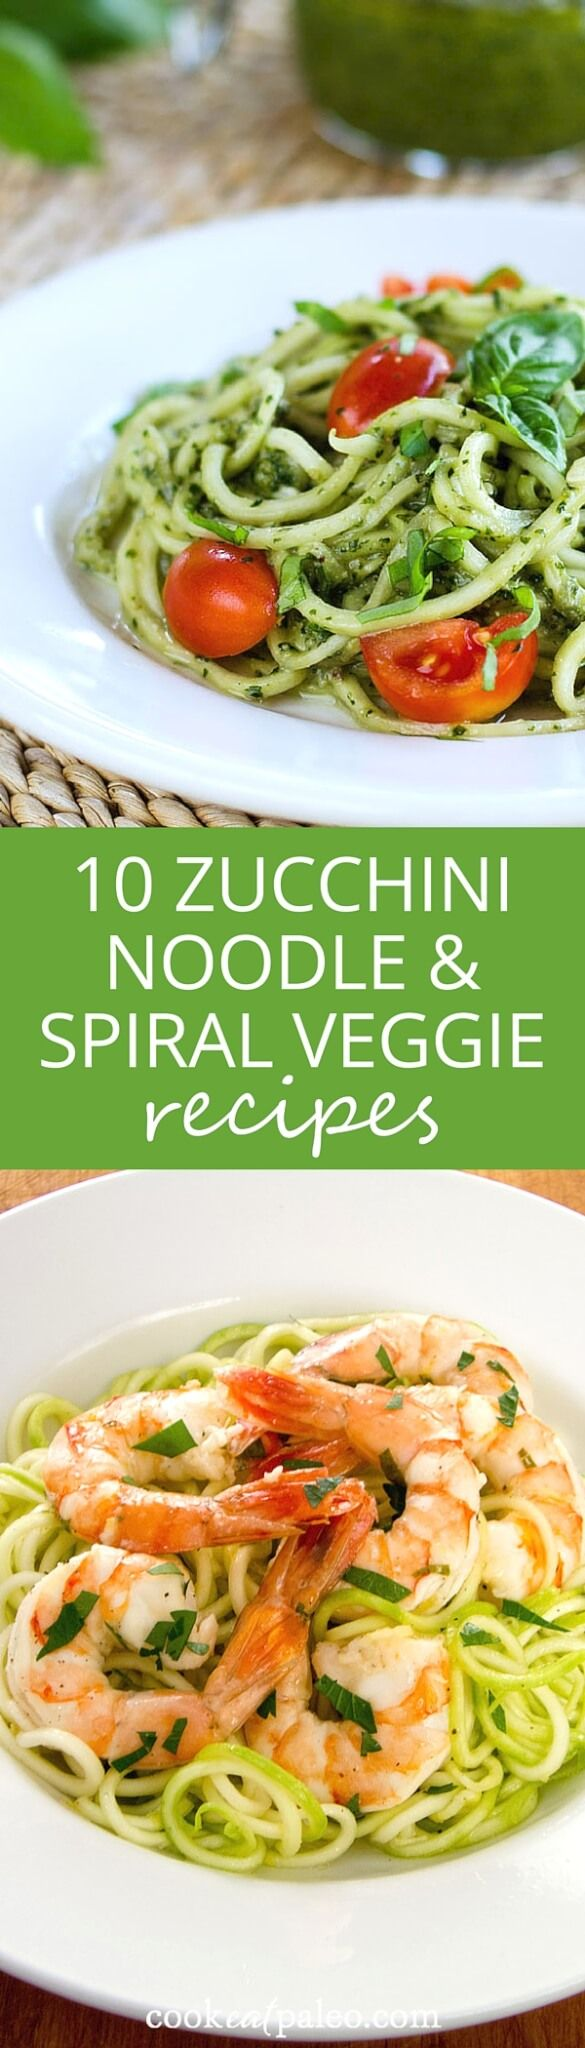 Easy Zucchini Noodle and Spiralized Veggie Recipes - savory paleo pasta recipes that are gluten-free, grain-free, and packed with delicious flavors and fresh ingredients. ~ http://cookeatpaleo.com